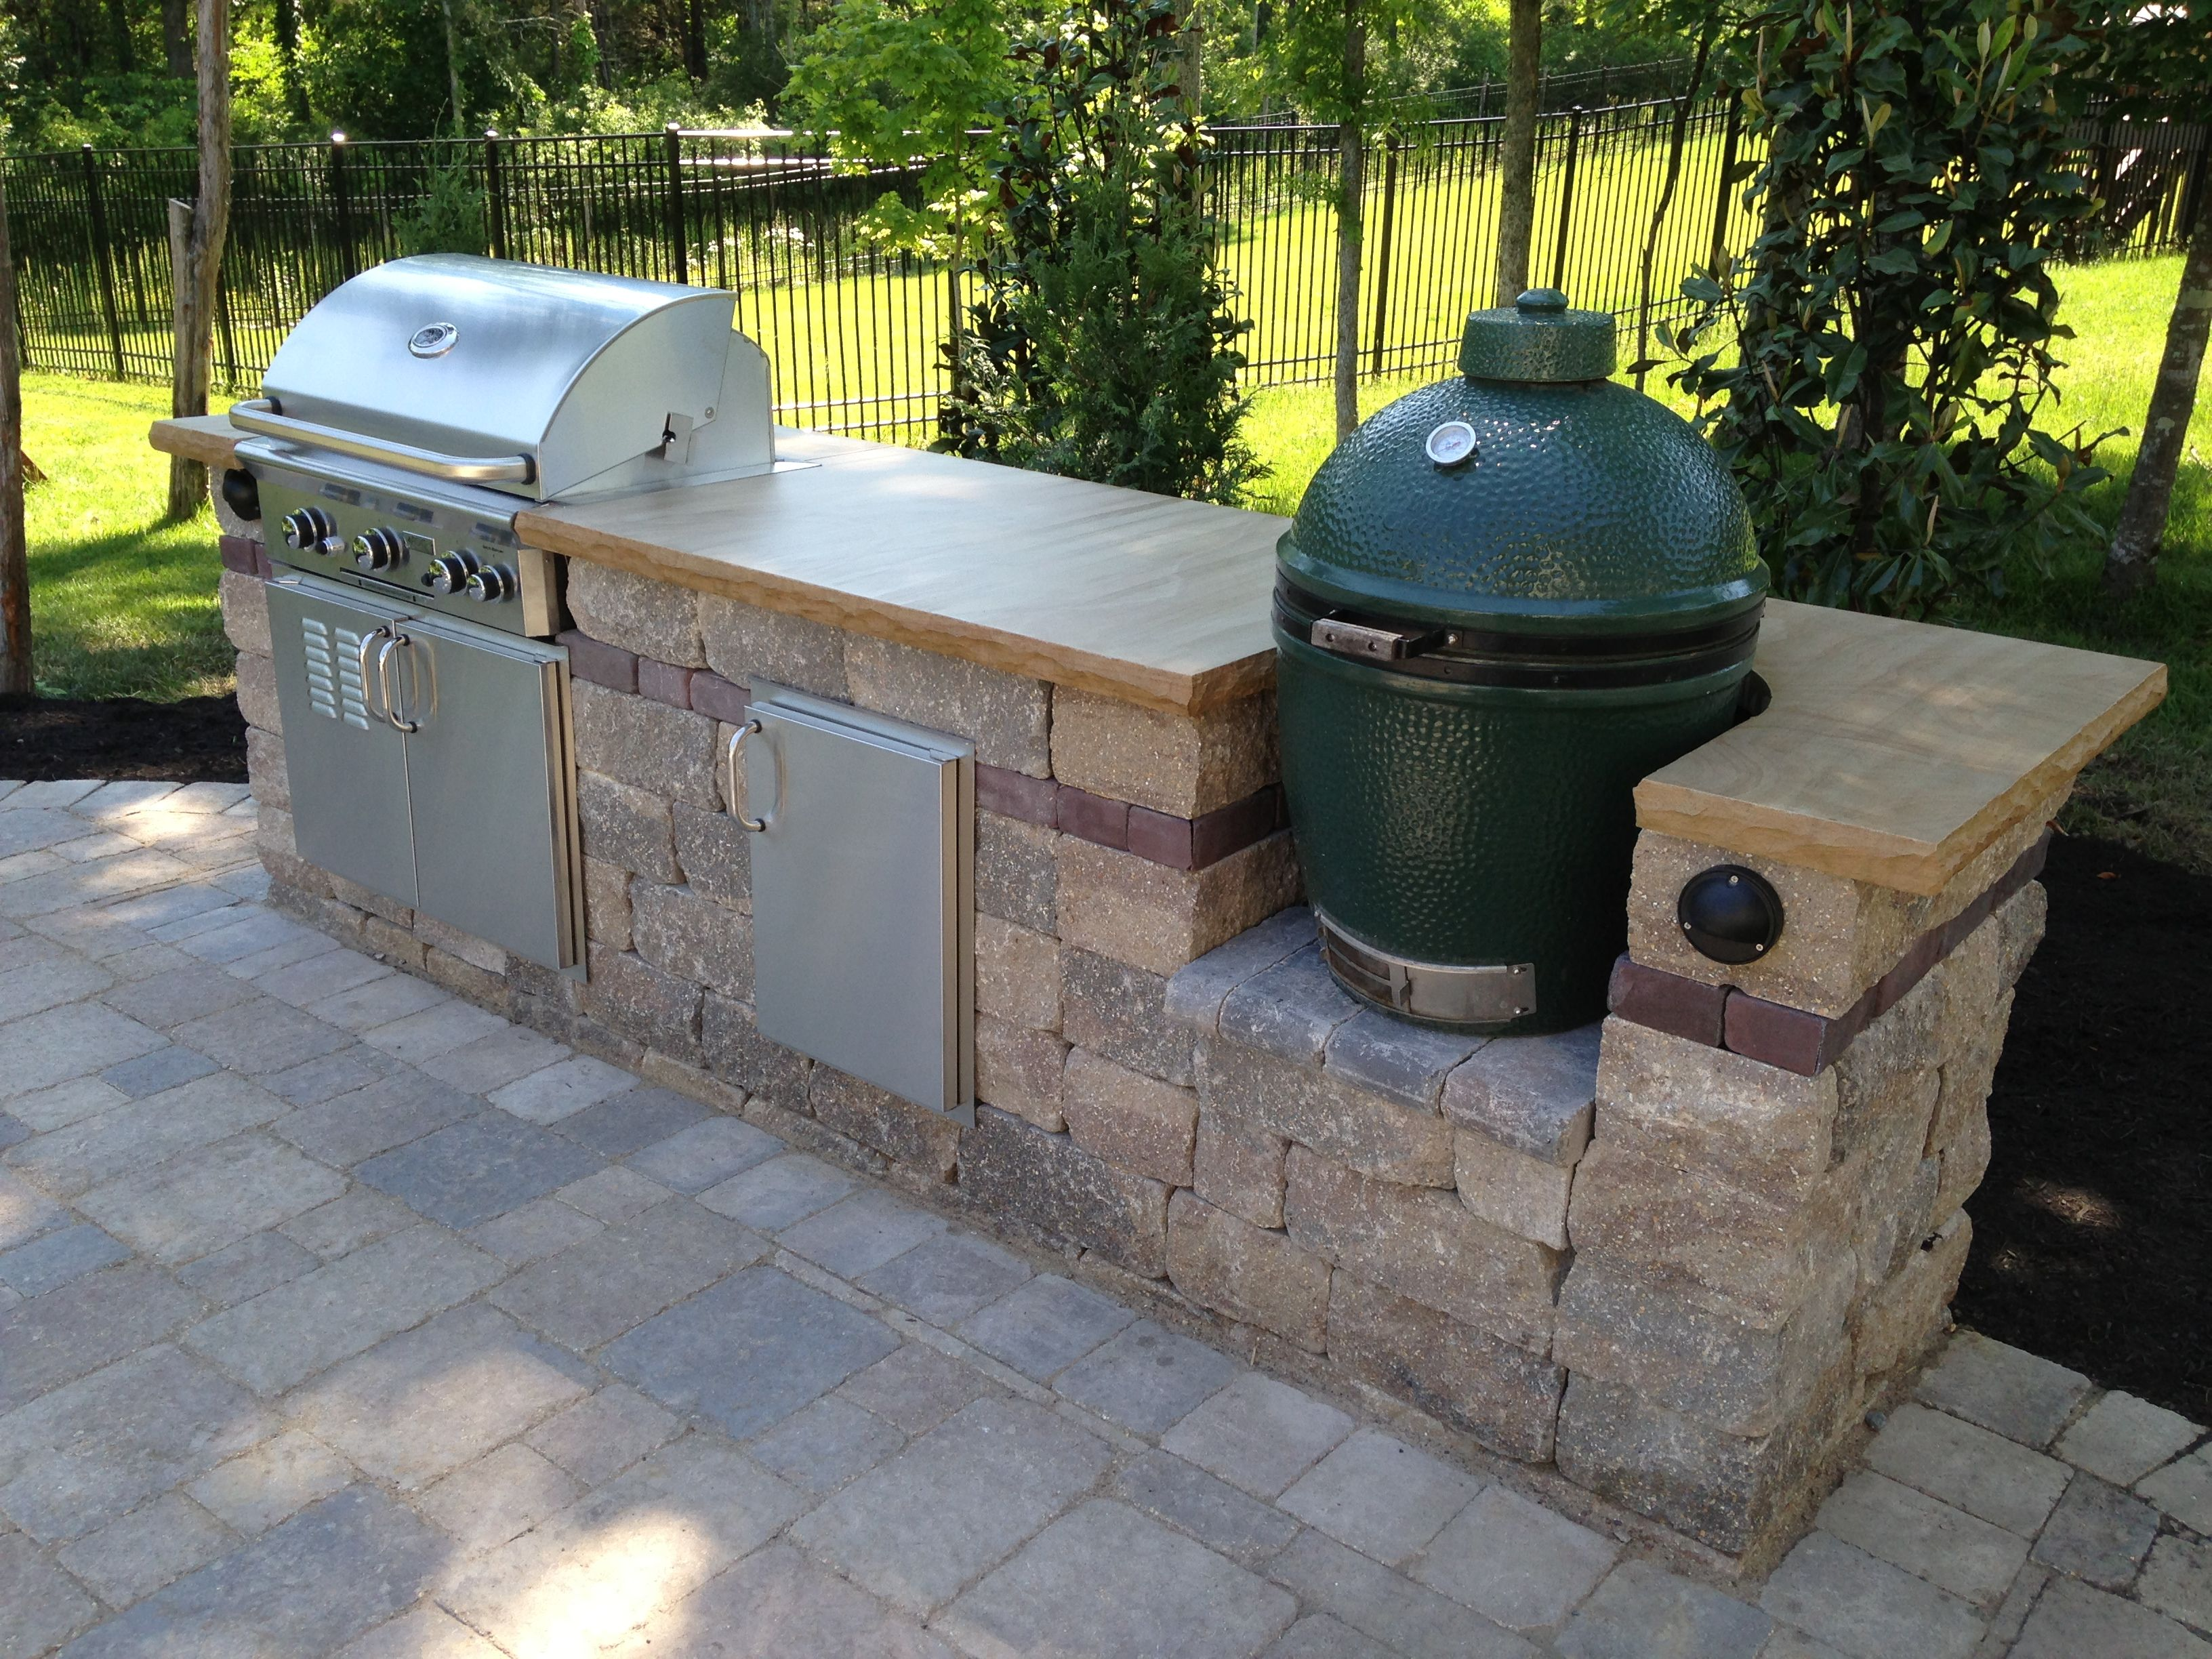 Stone Countertop grill & bge with crab orchard stone countertop | outdoor kitchens